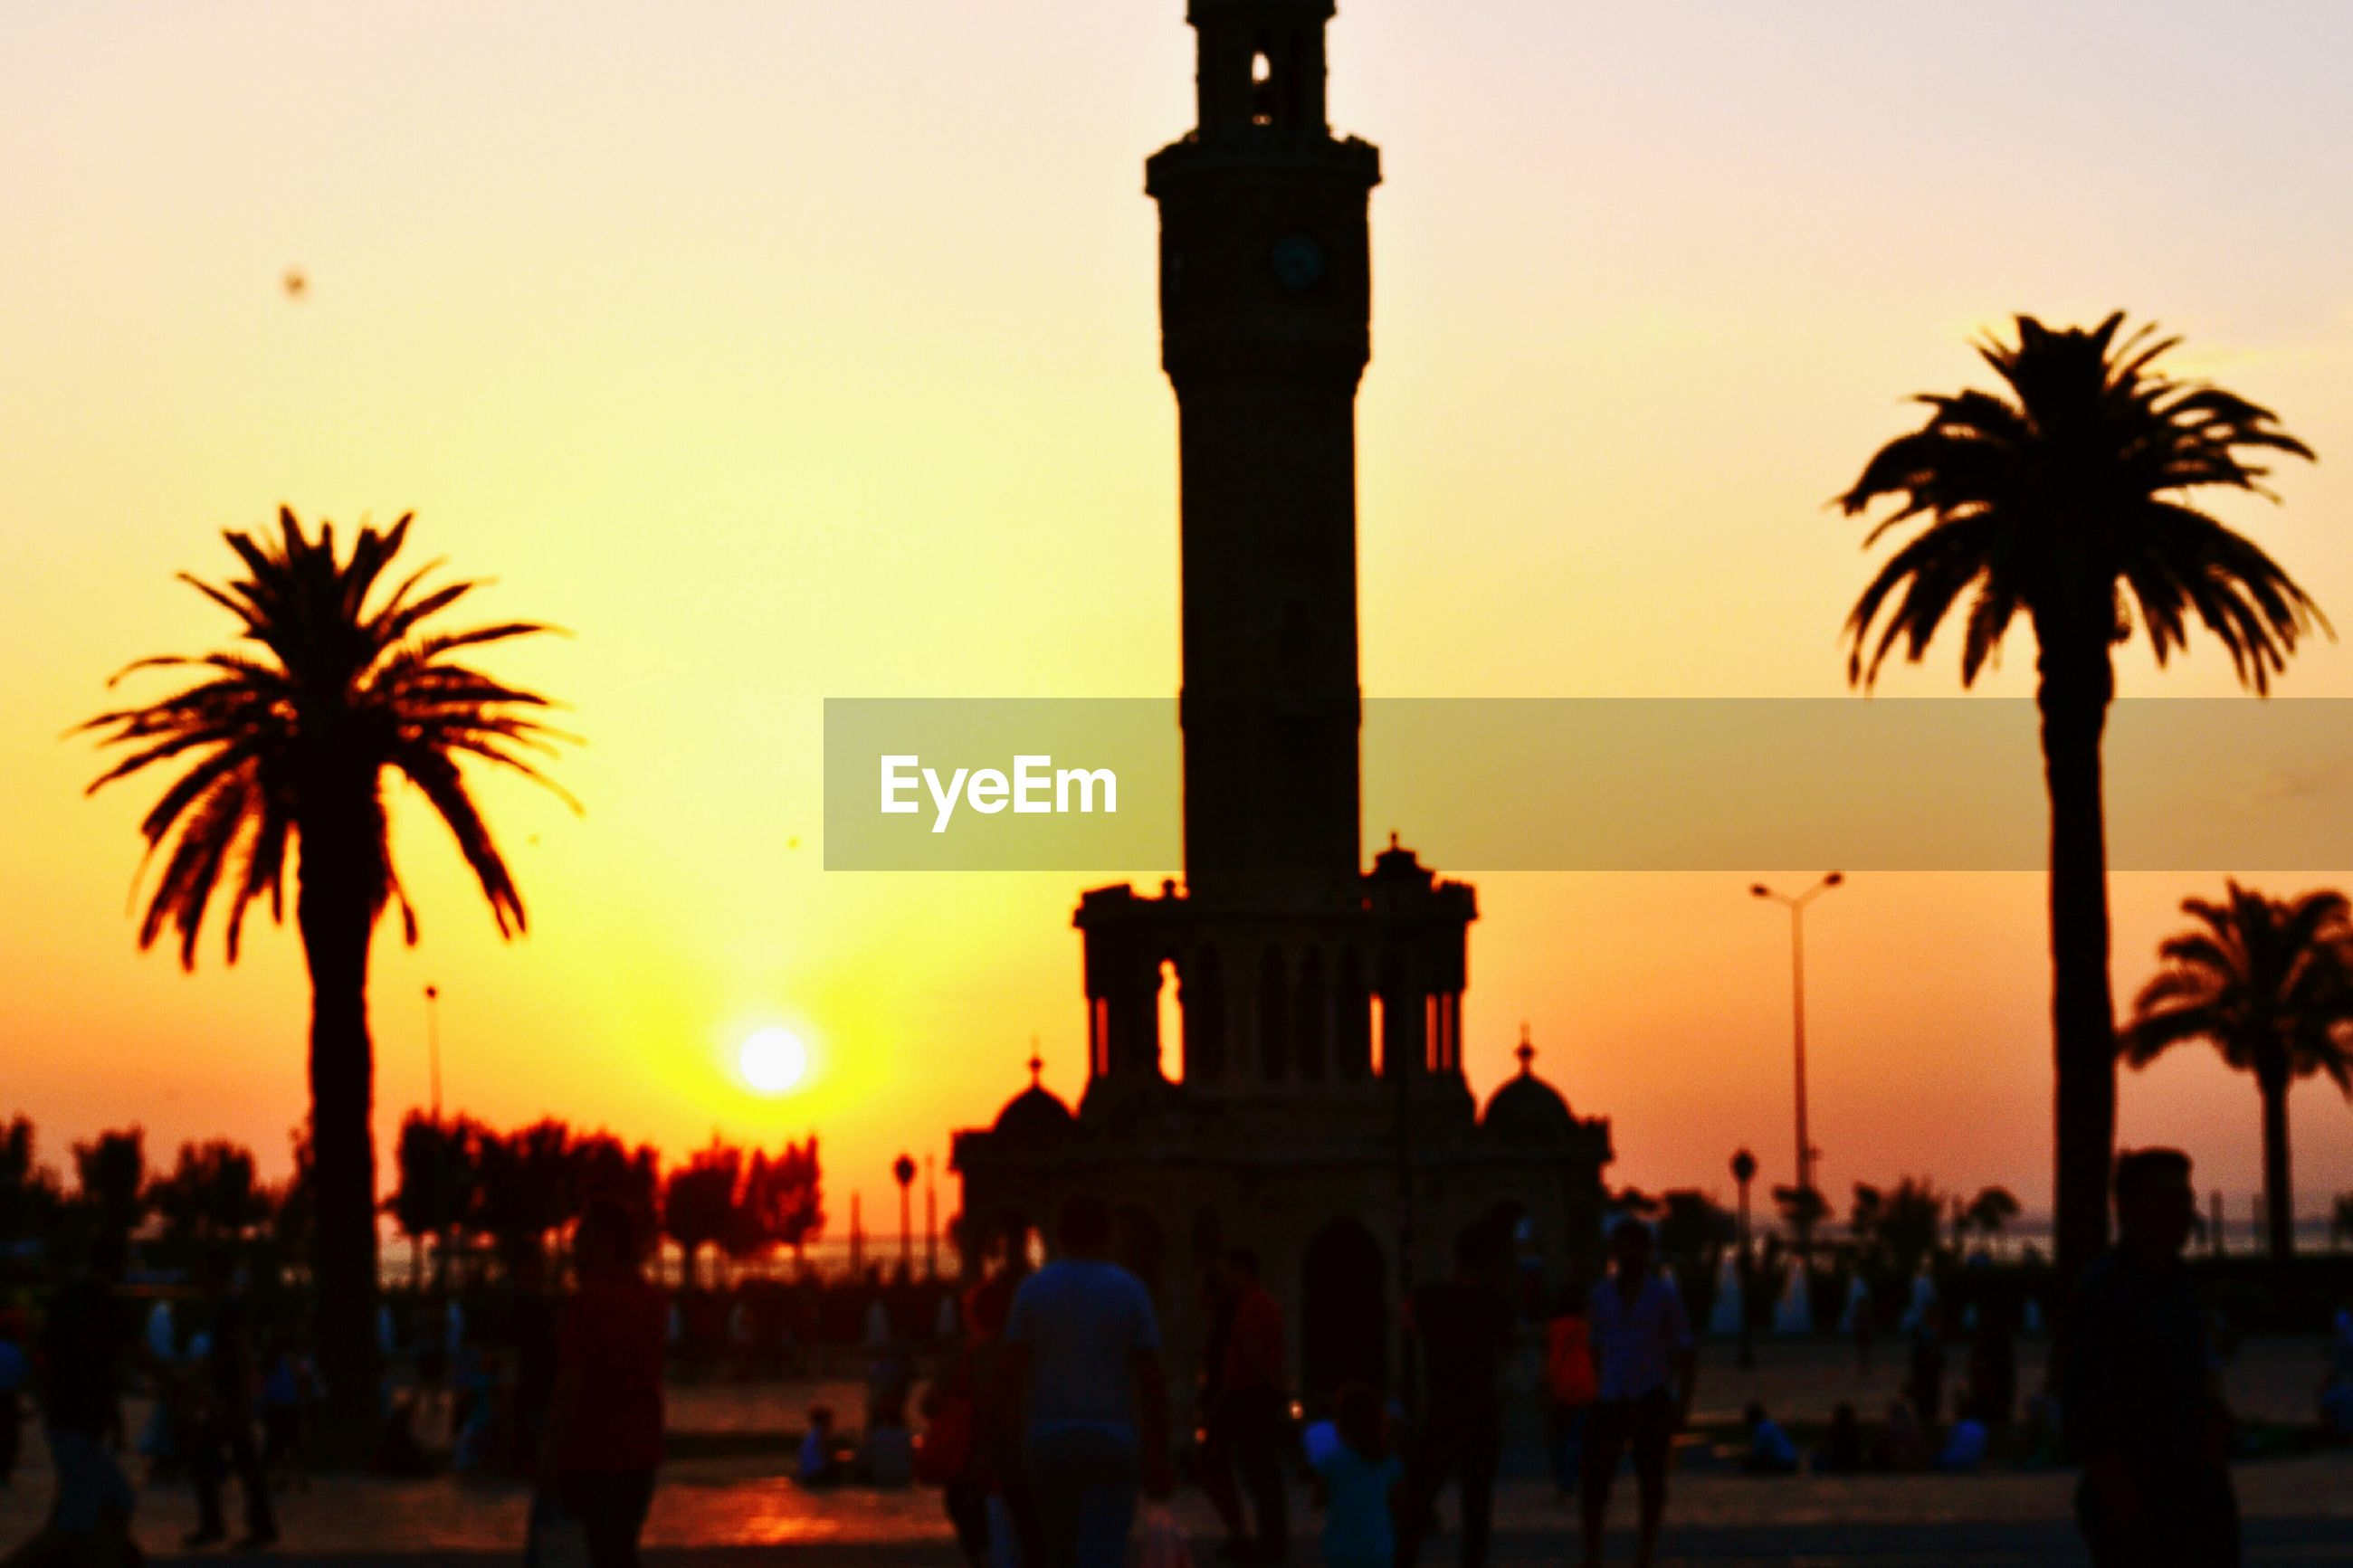 large group of people, sunset, travel destinations, silhouette, real people, architecture, travel, outdoors, mixed age range, men, built structure, tourism, sky, palm tree, building exterior, leisure activity, tree, statue, sculpture, day